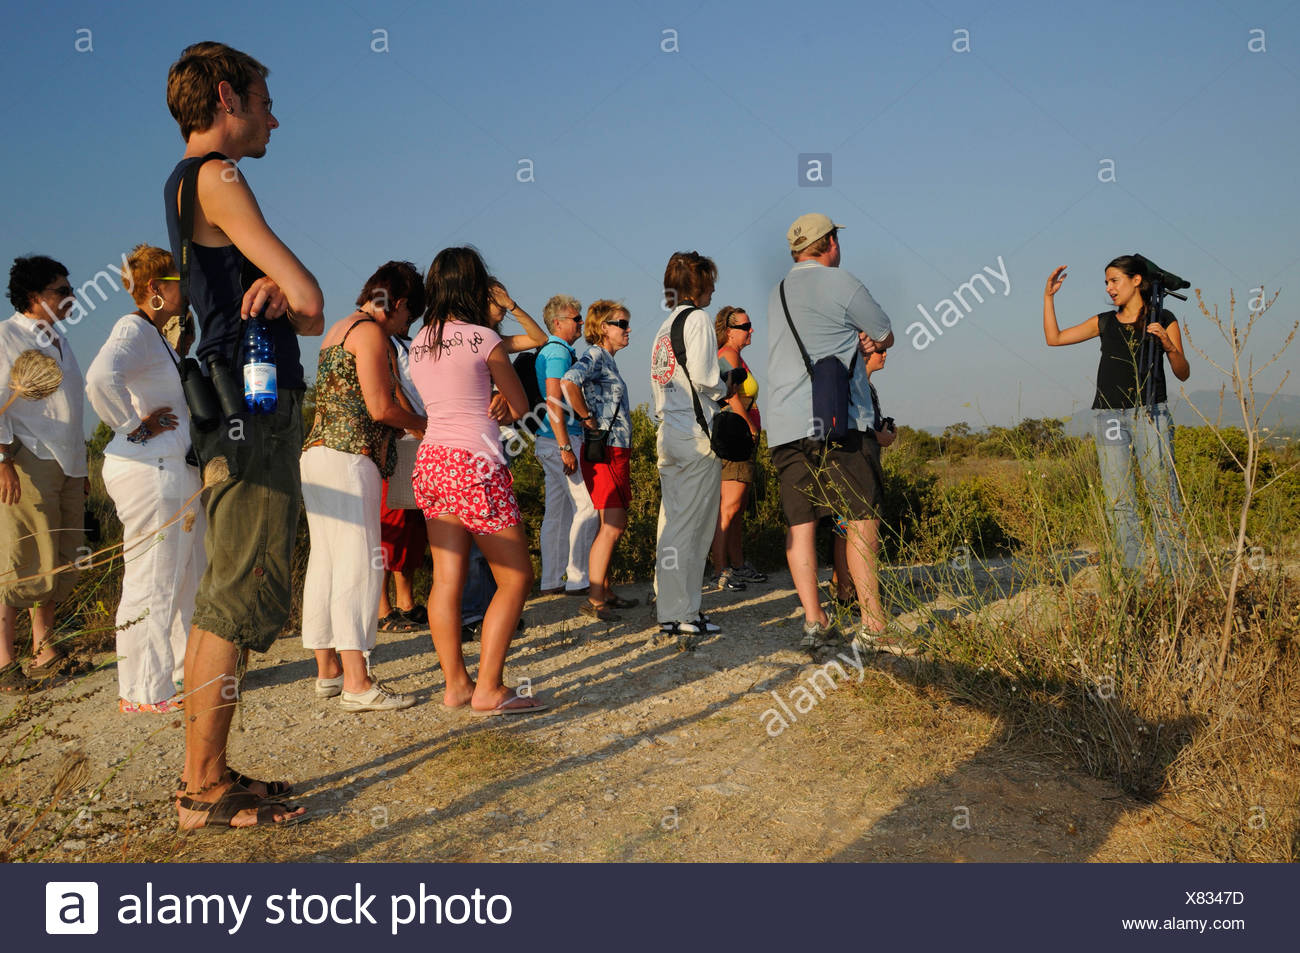 ornithological guided tour in a nature reserve, Greece, Peloponnes, Messinien - Stock Image